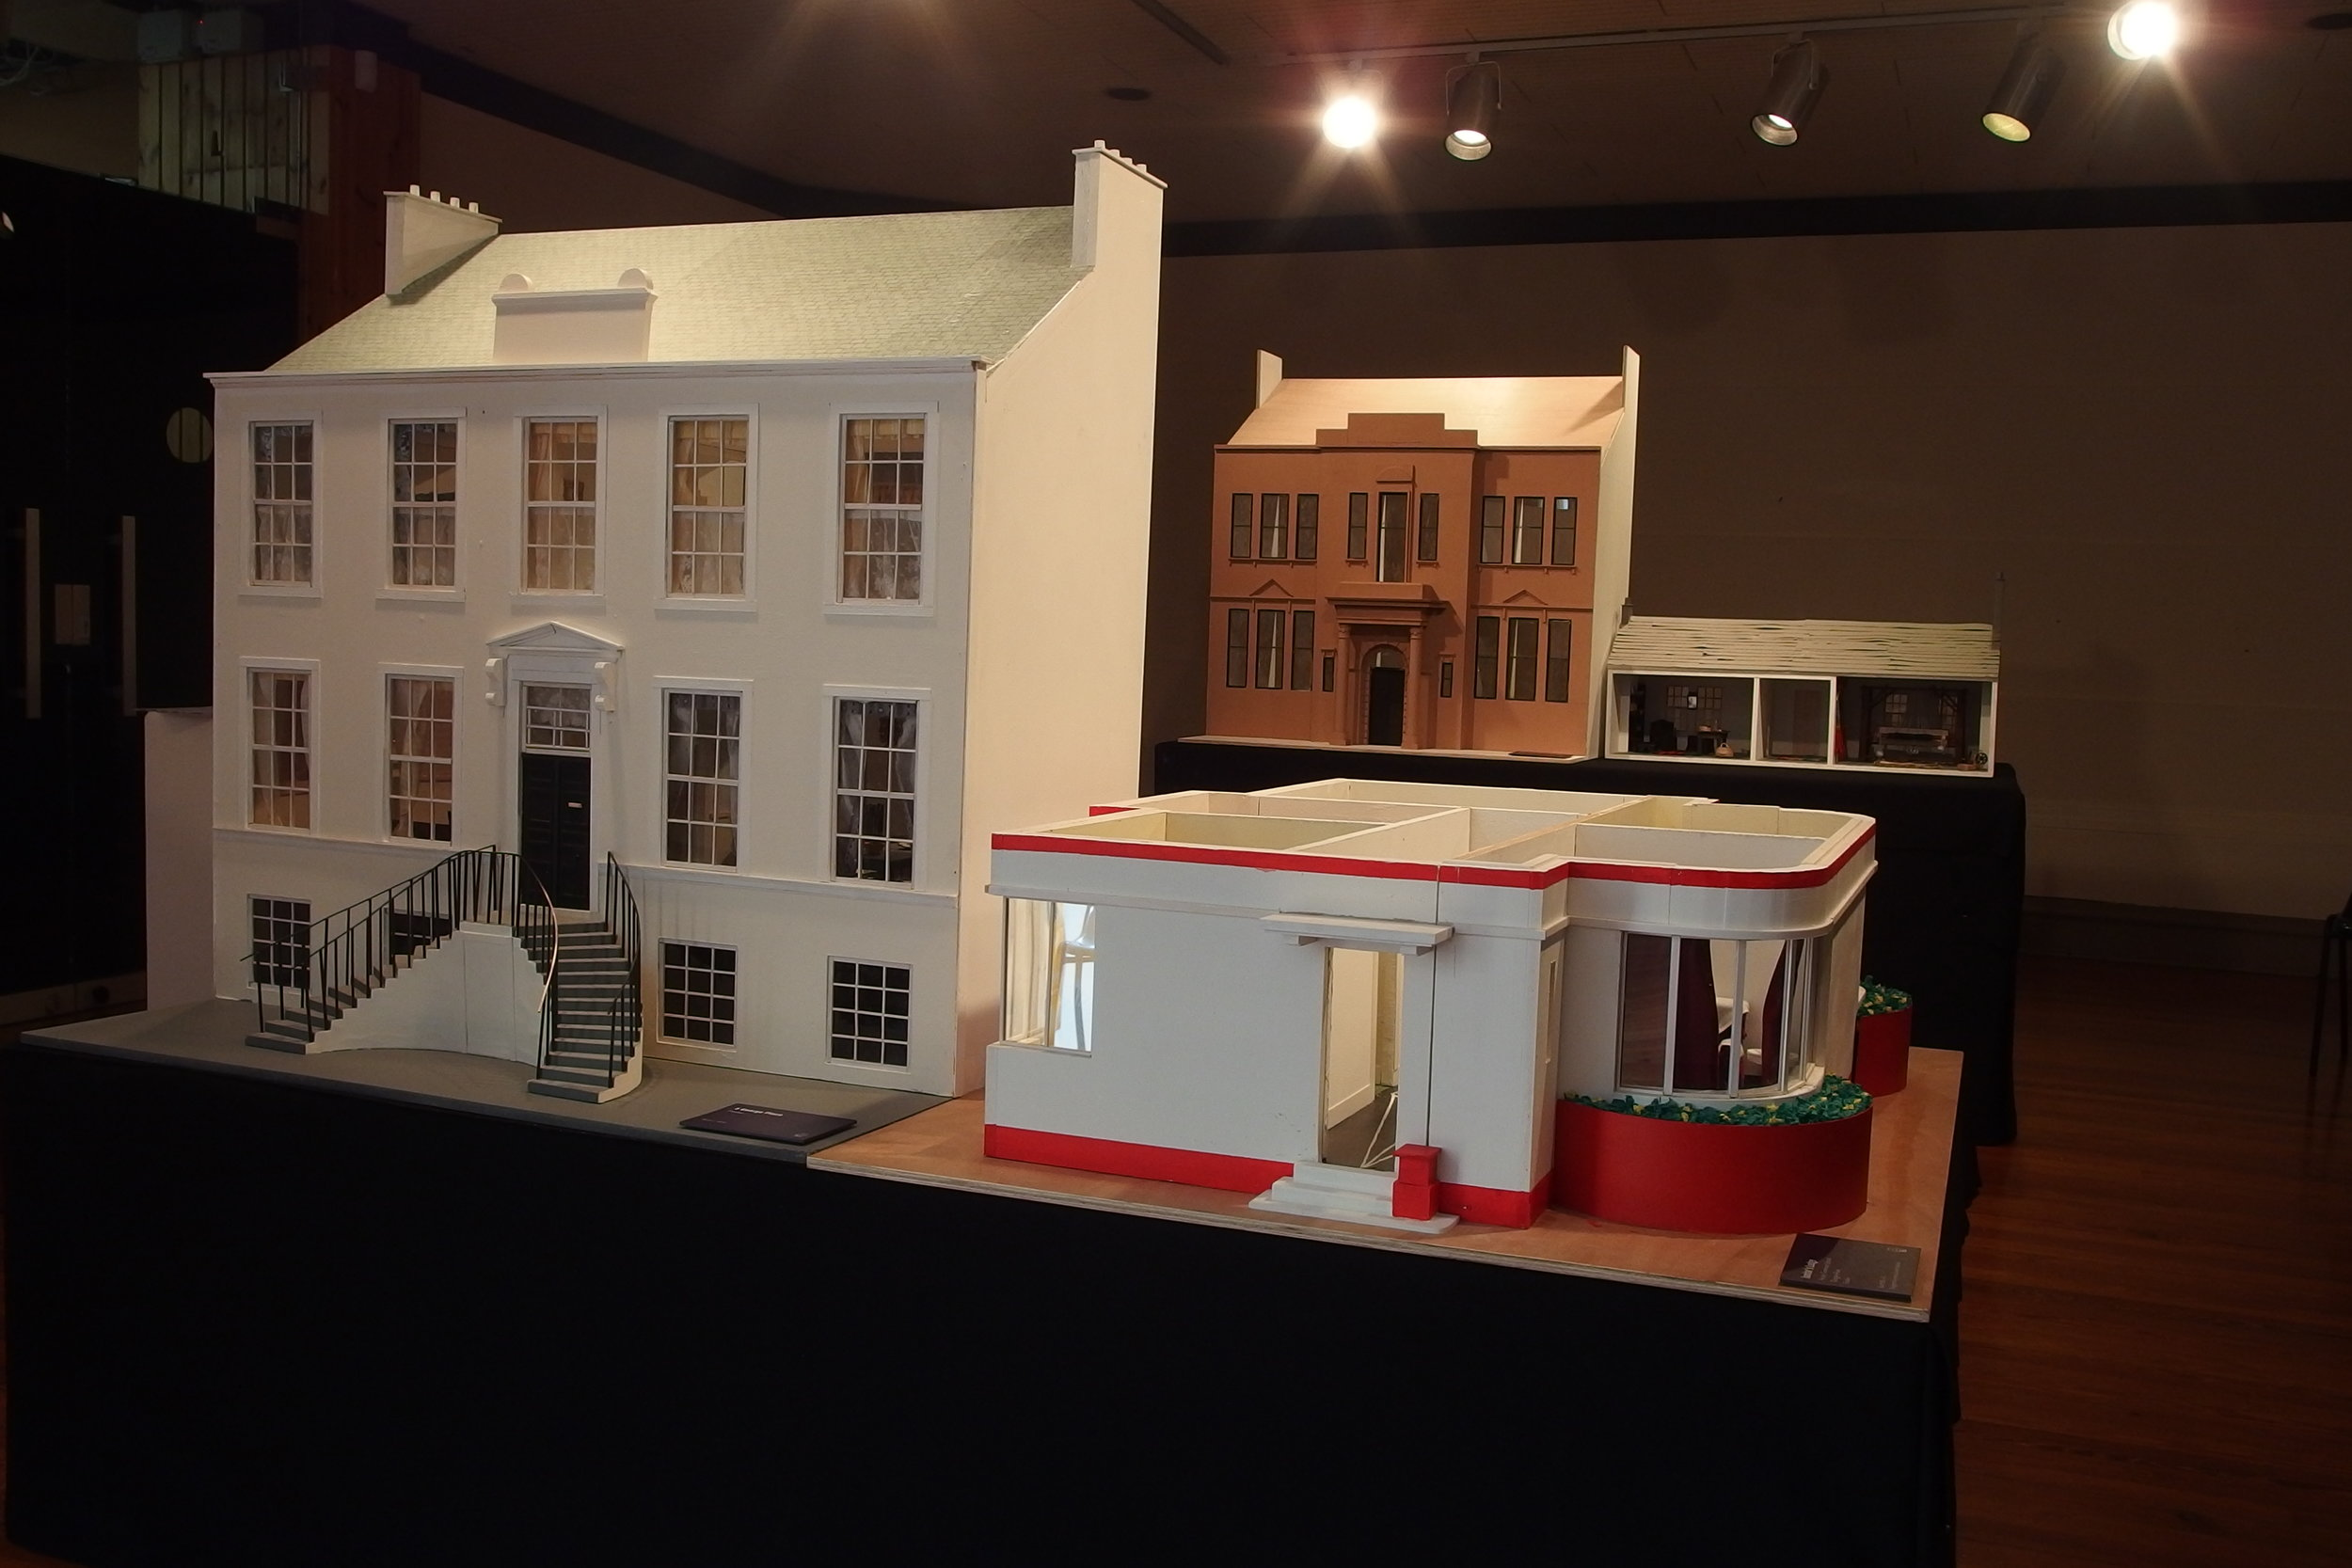 The finished dolls houses on display at Paisley Museum, September 2018